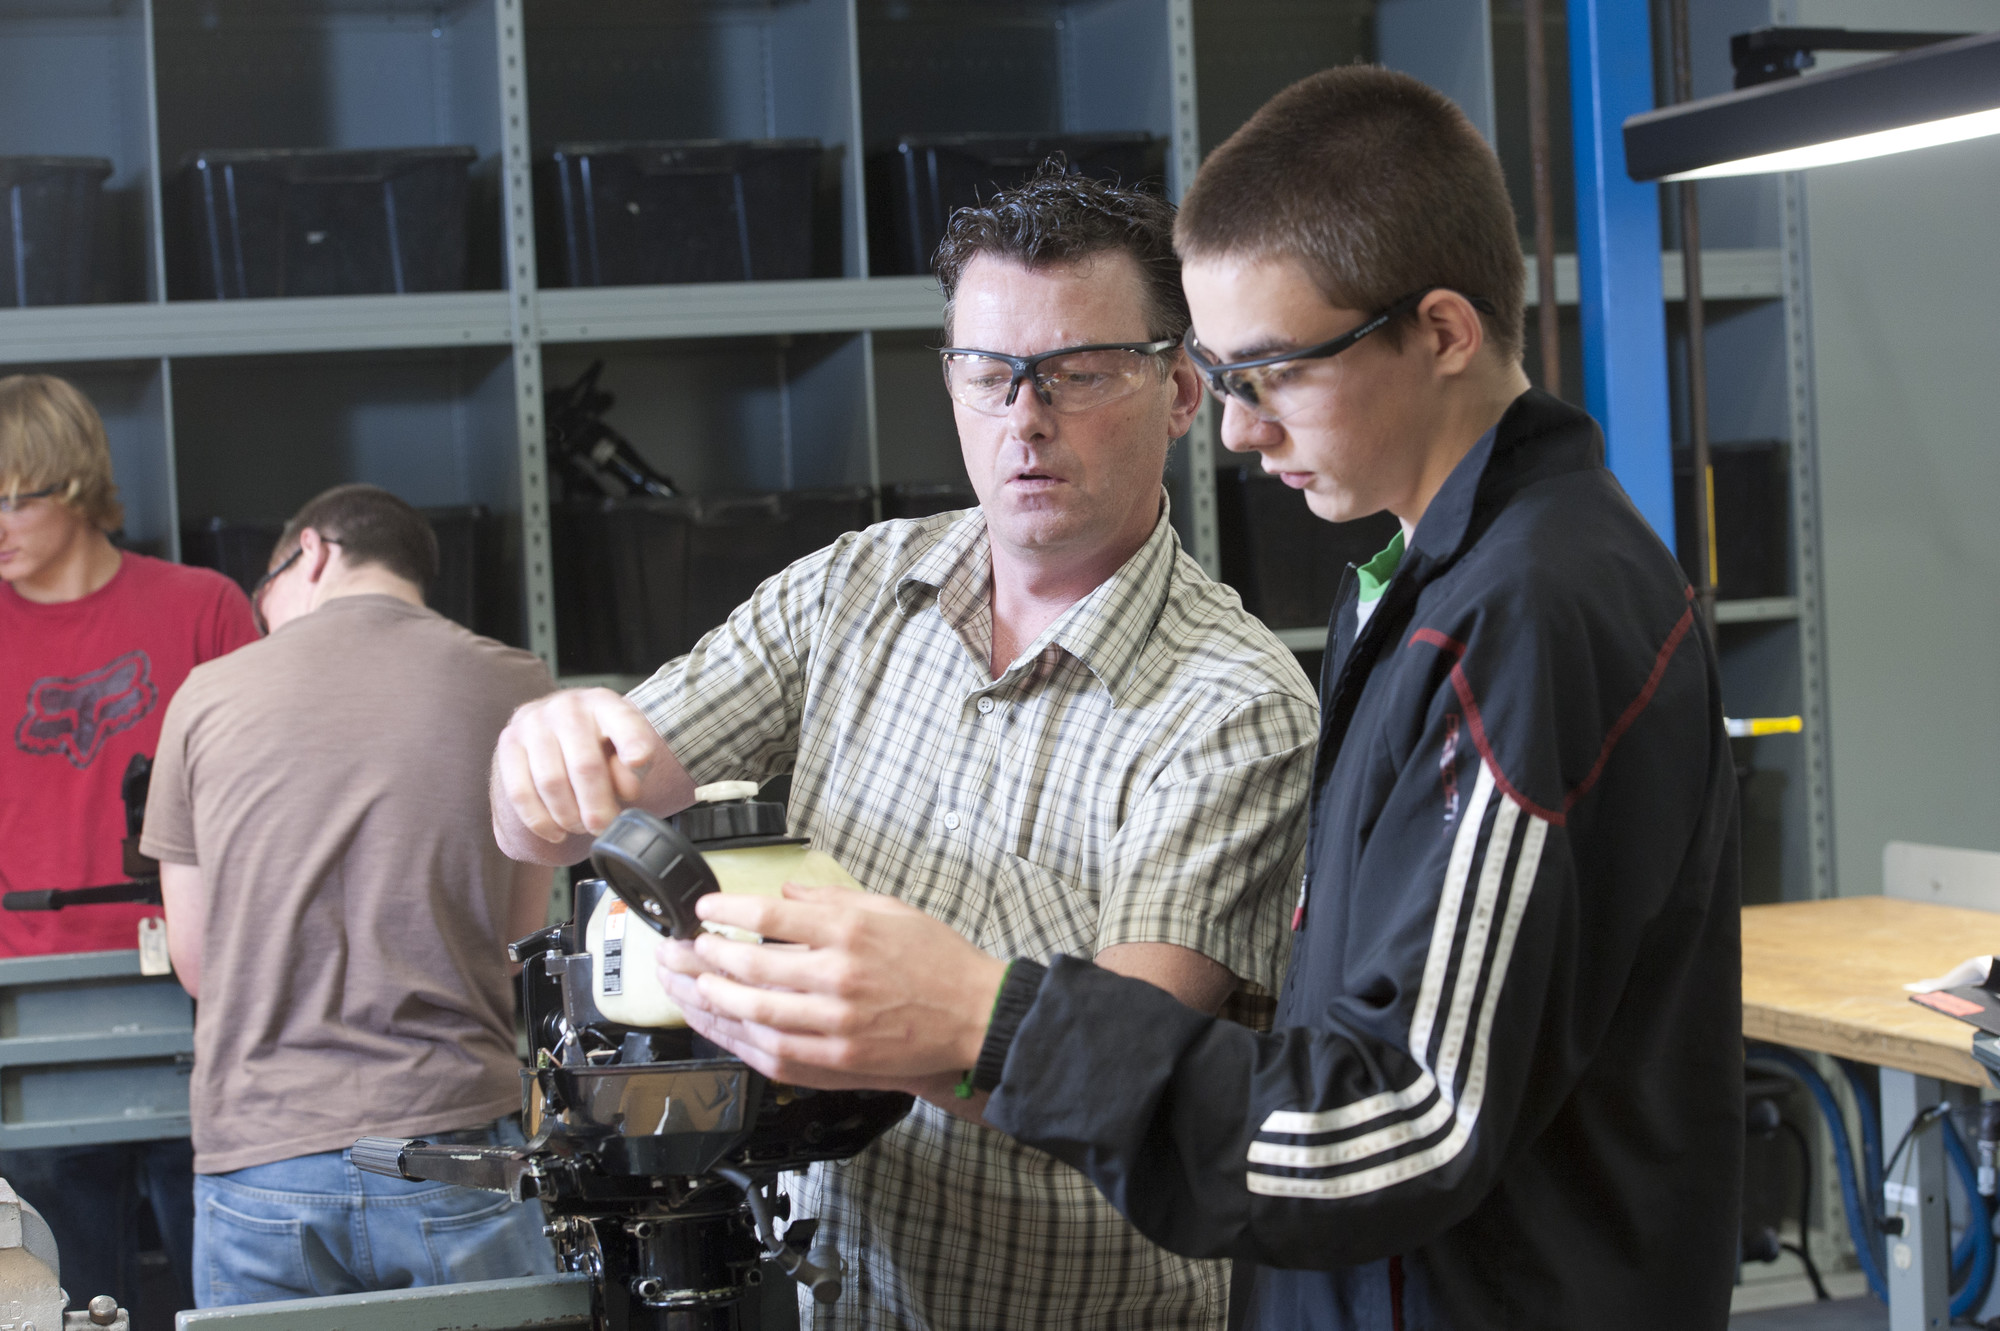 Professor in shop showing male student a part